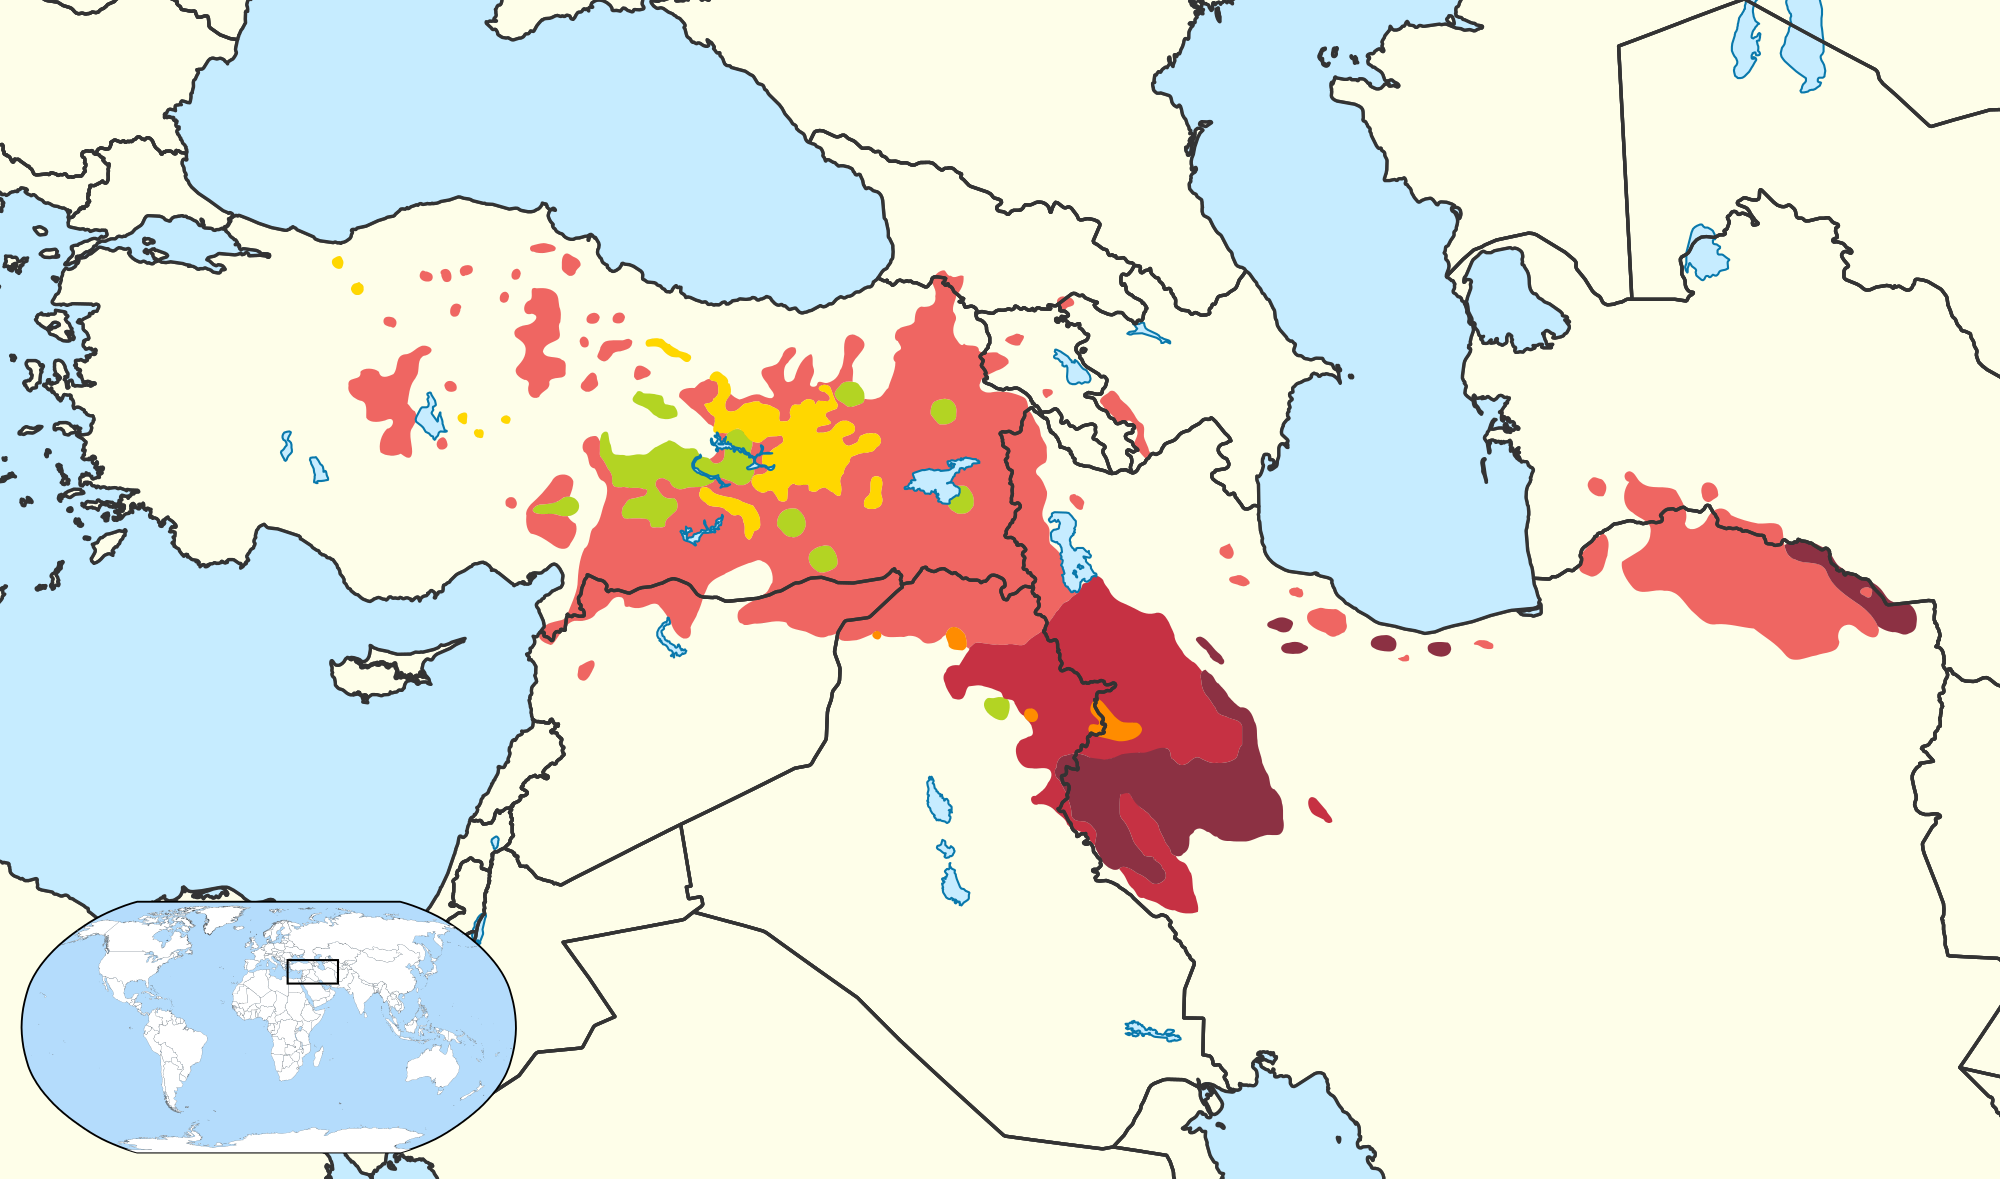 kurdish_languages_map_svg.png